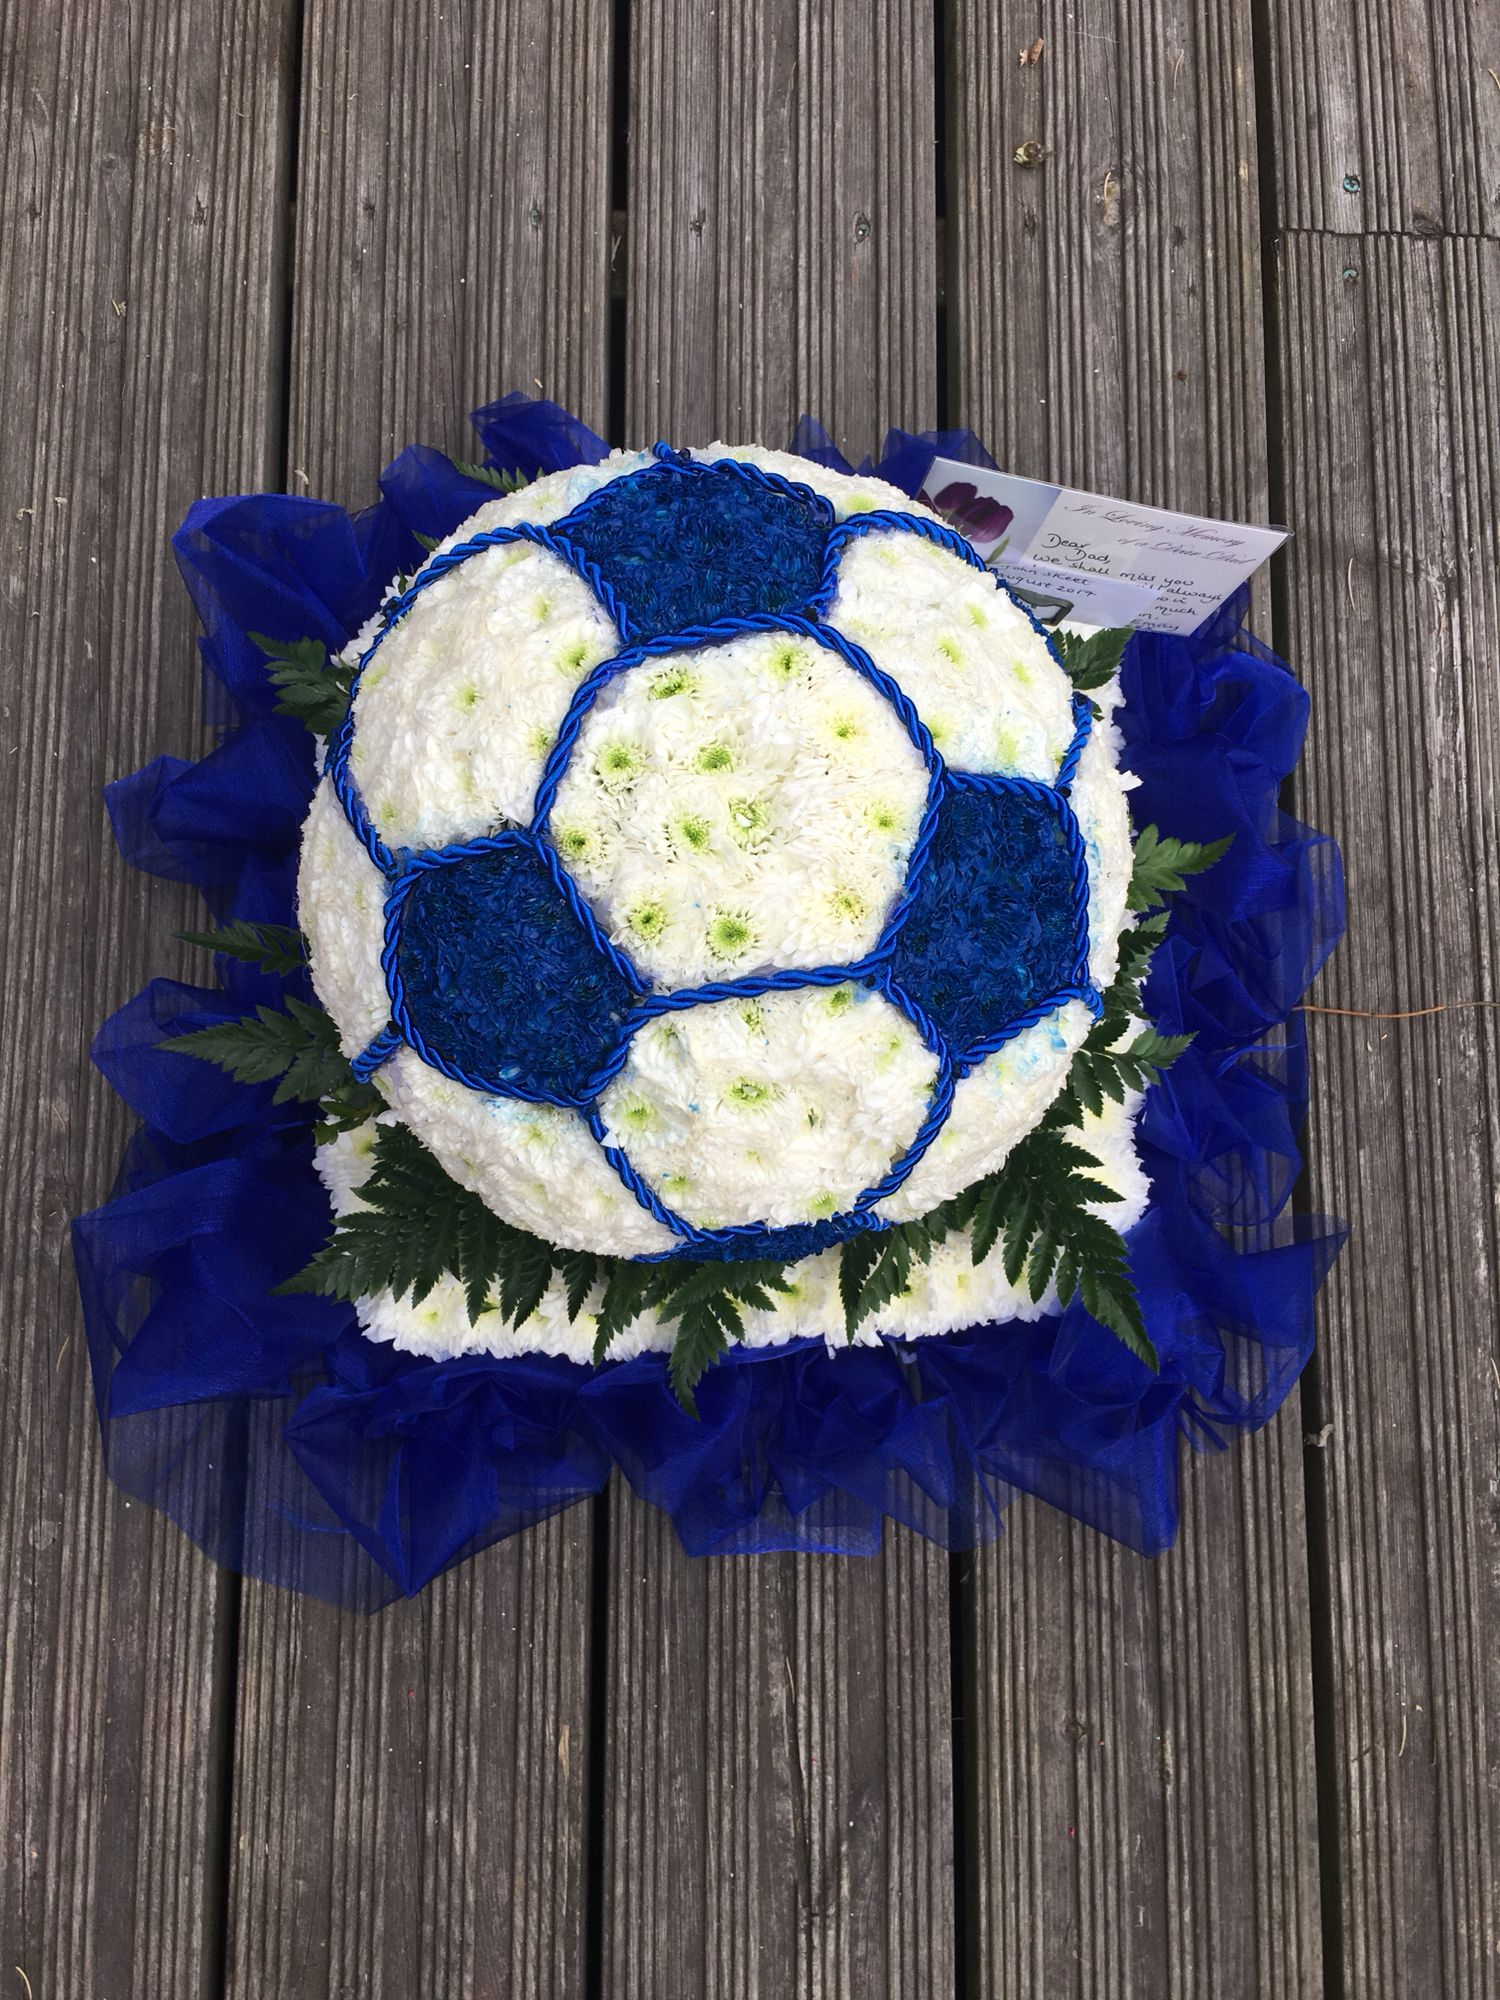 Football funeral flower tribute sympaty funeral flowers football funeral flower tribute izmirmasajfo